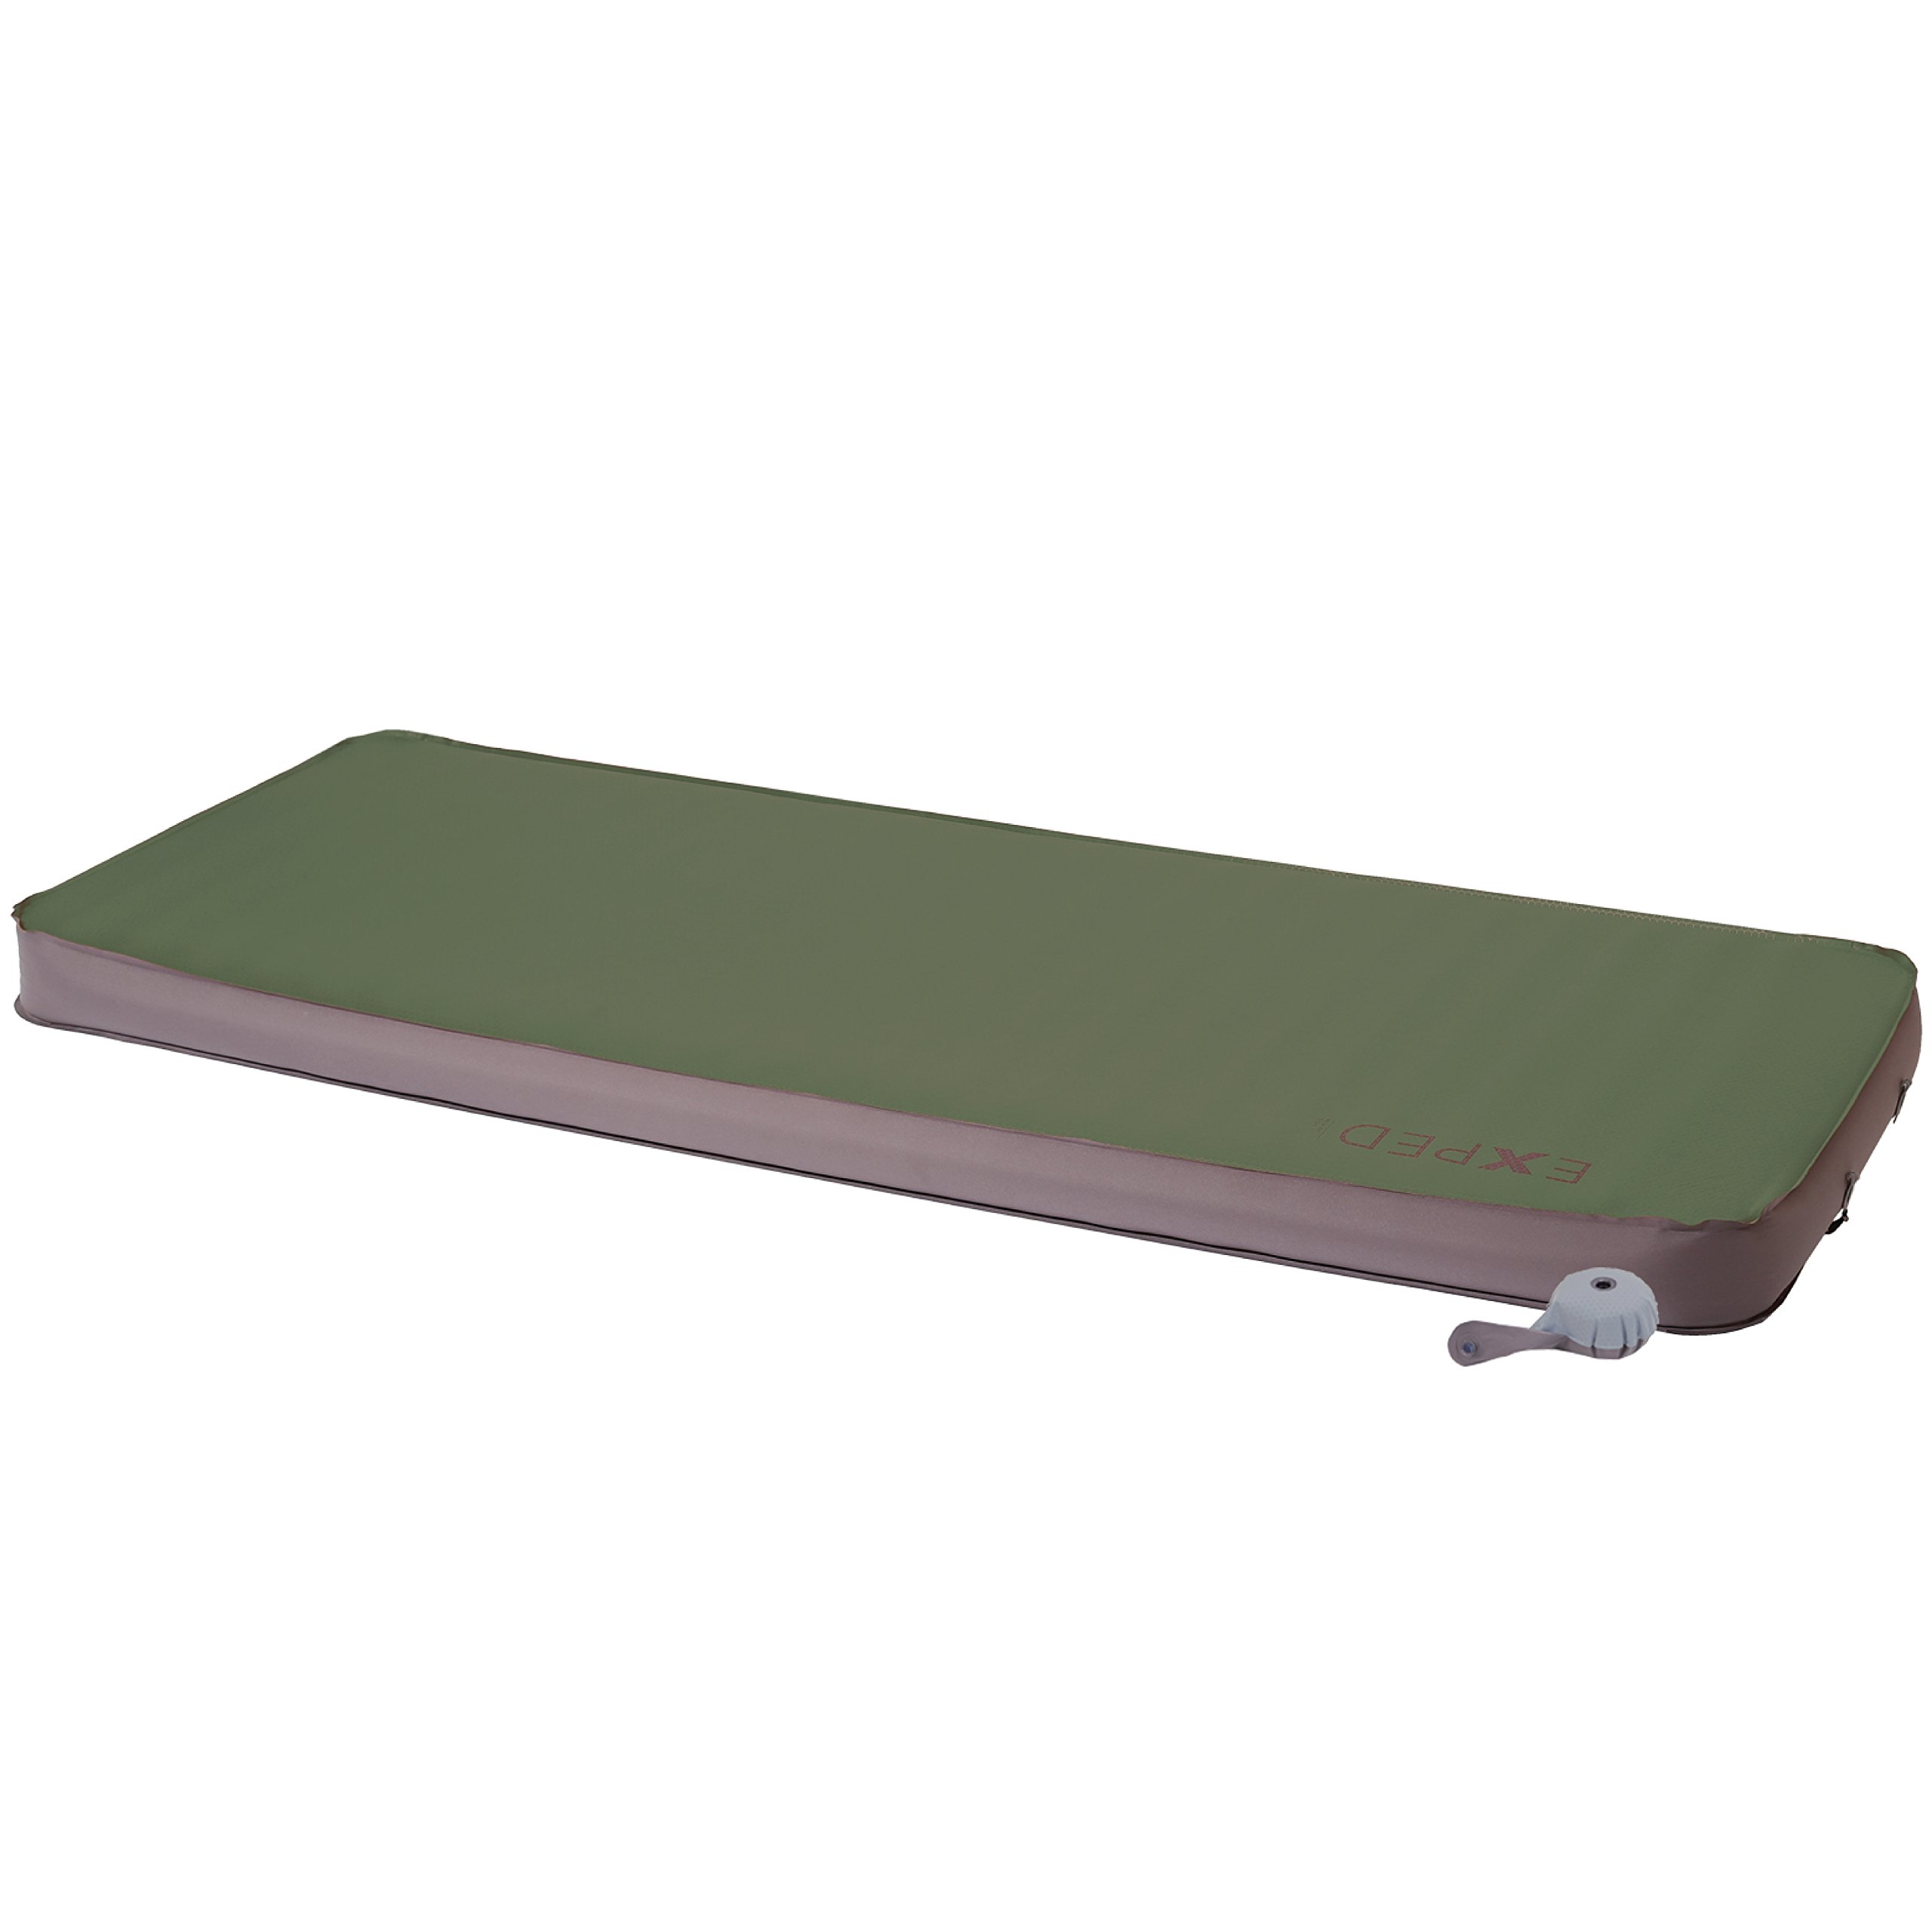 Exped Megamat 10 Insulated Self-Inflating Sleeping Pad, Green, Long Xtra Wide by Exped